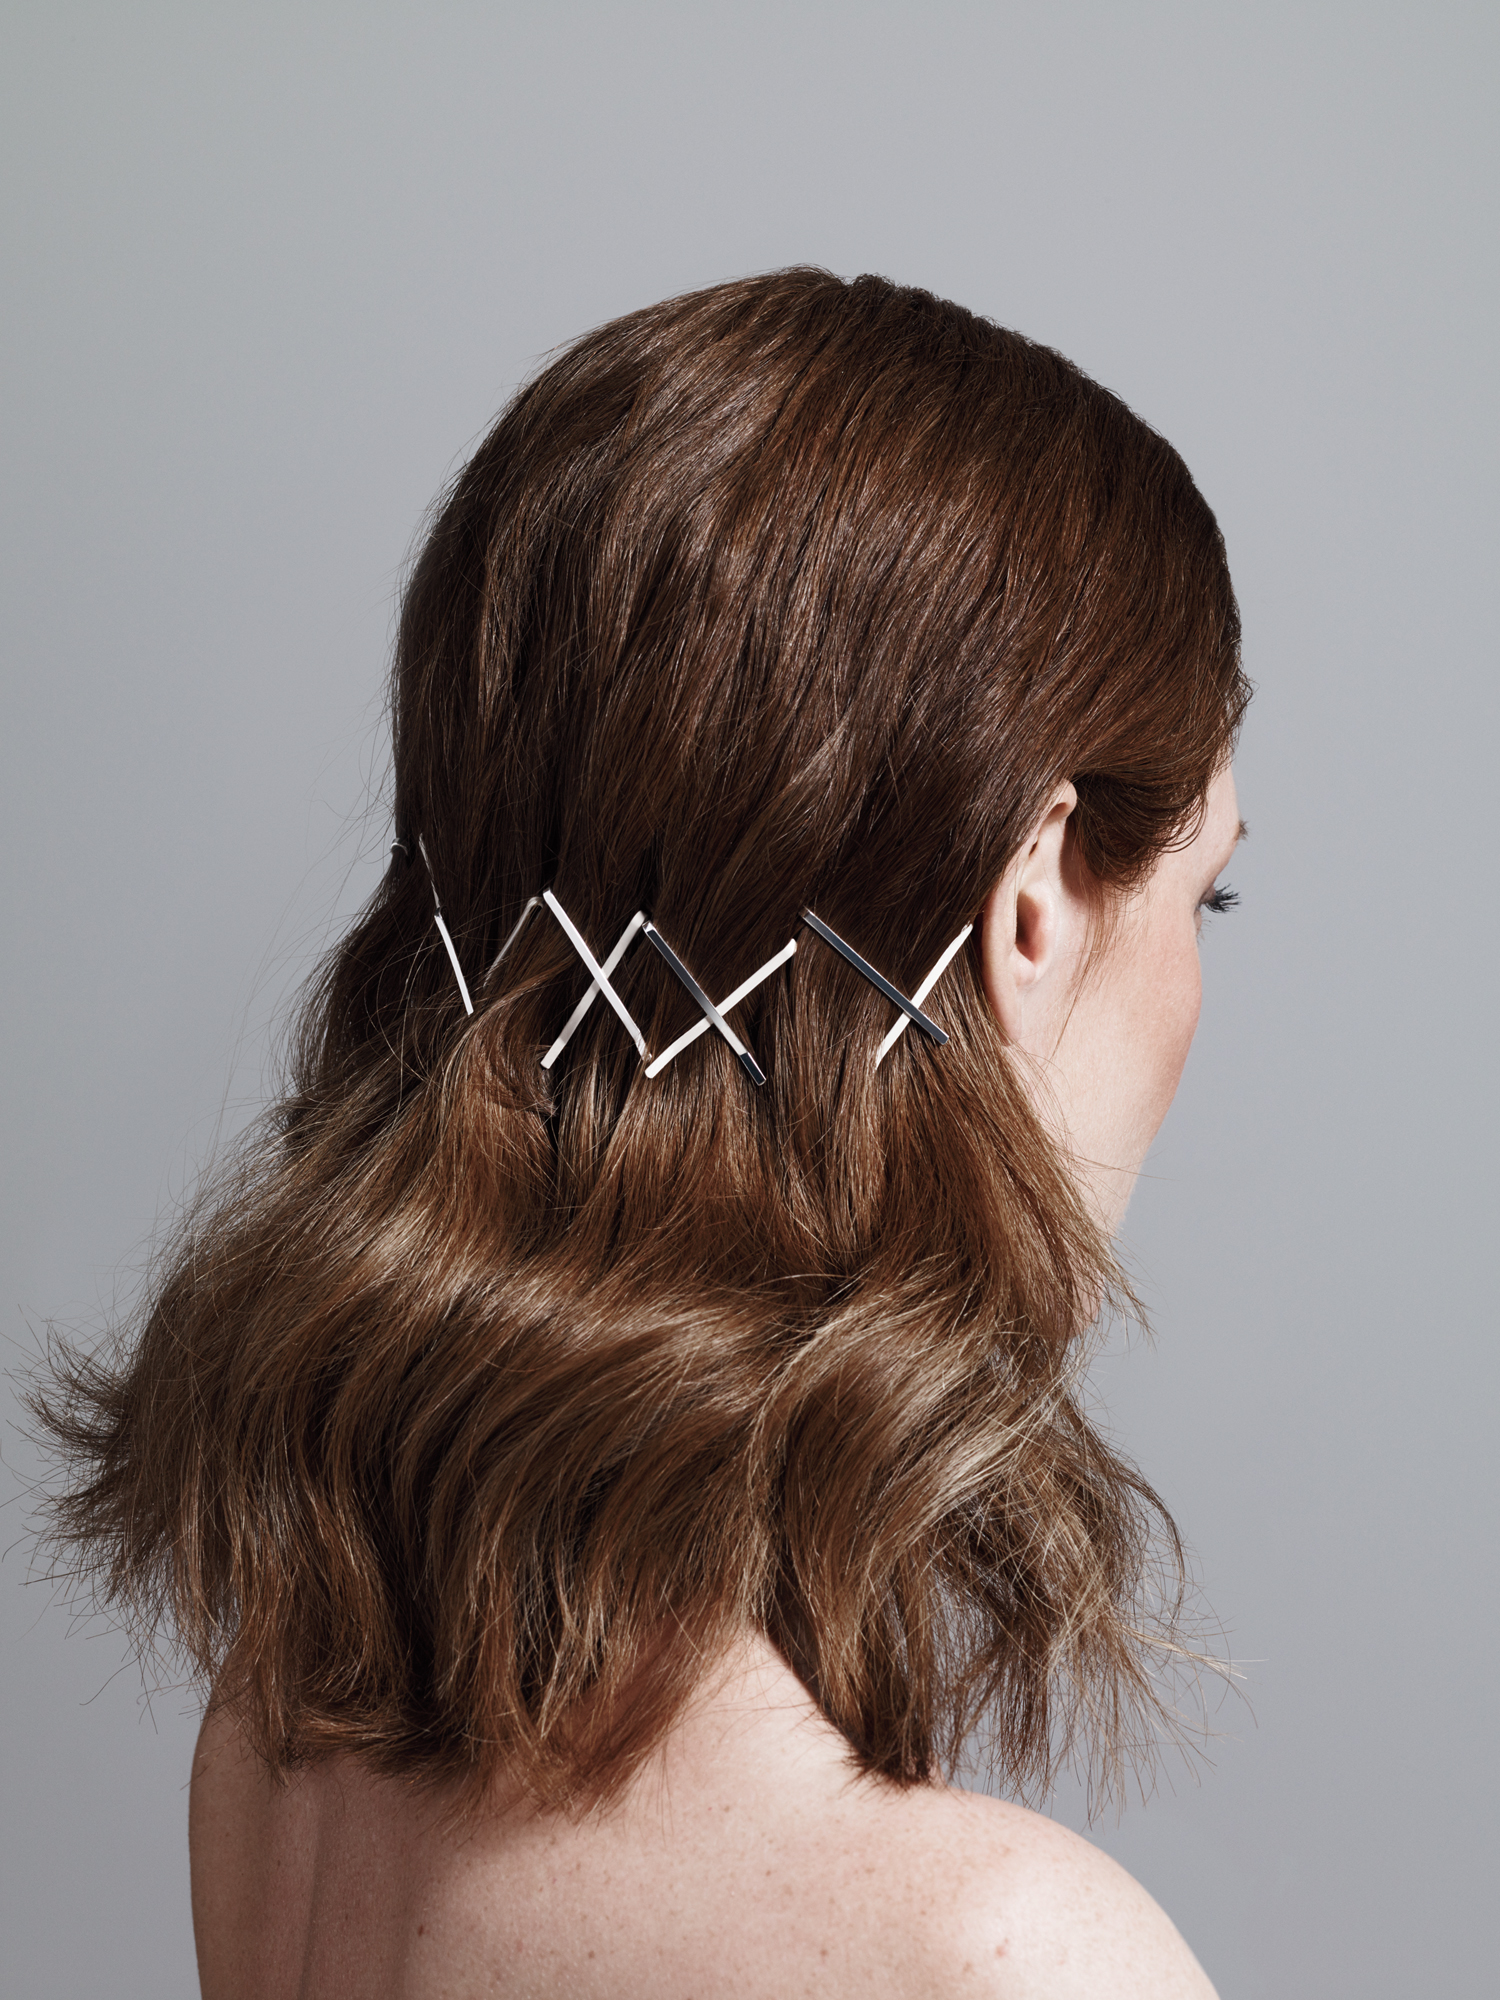 Model with criss cross bobby pins in back of hair